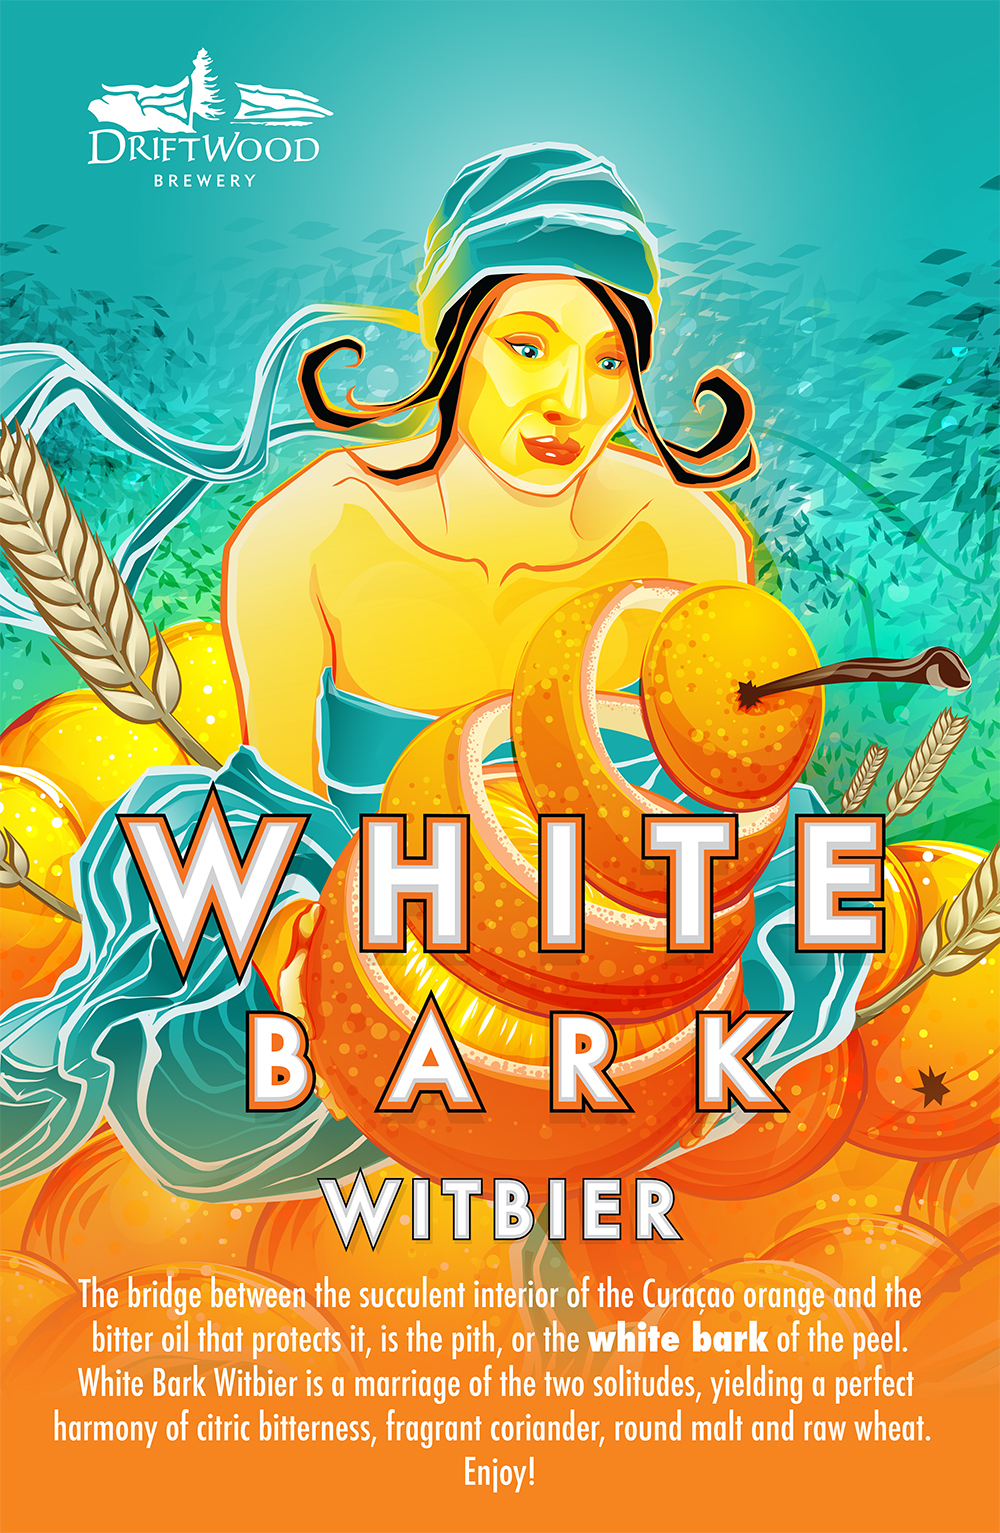 Poster Design for Driftwood Brewery's White Bark Witbier